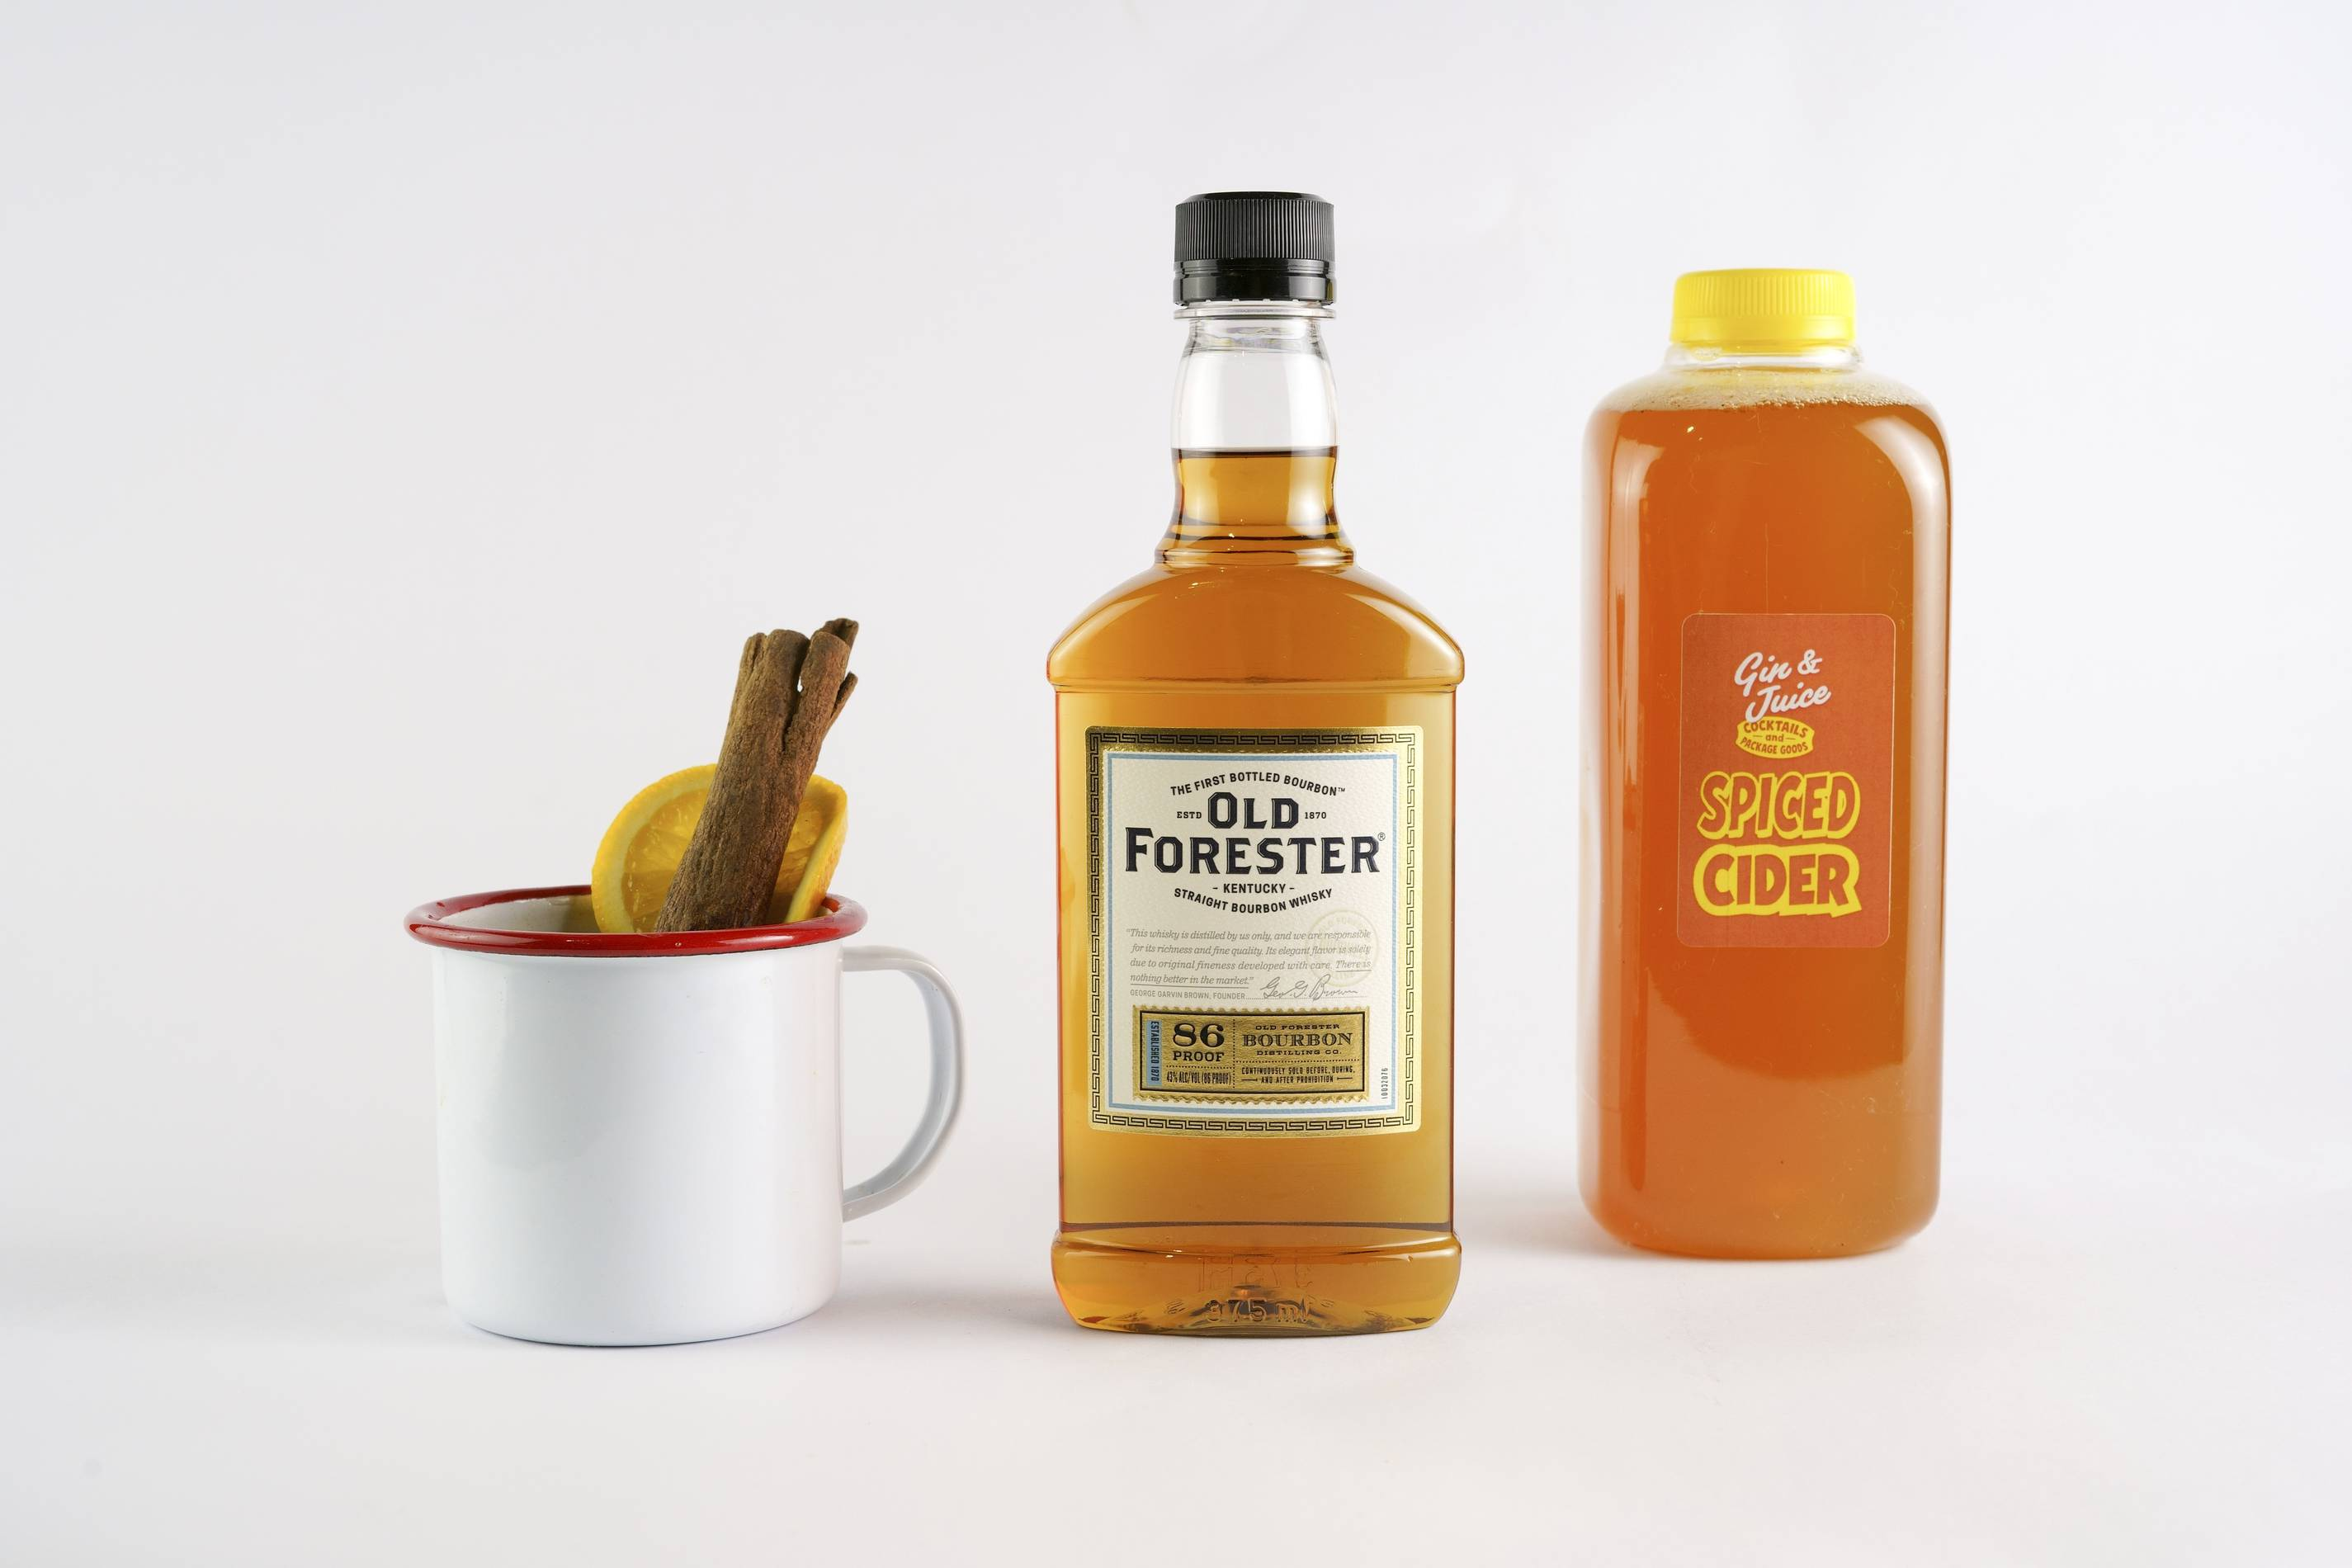 Spiced_Cider_Kit_Courtesy_Gin_And_Juice.jpg